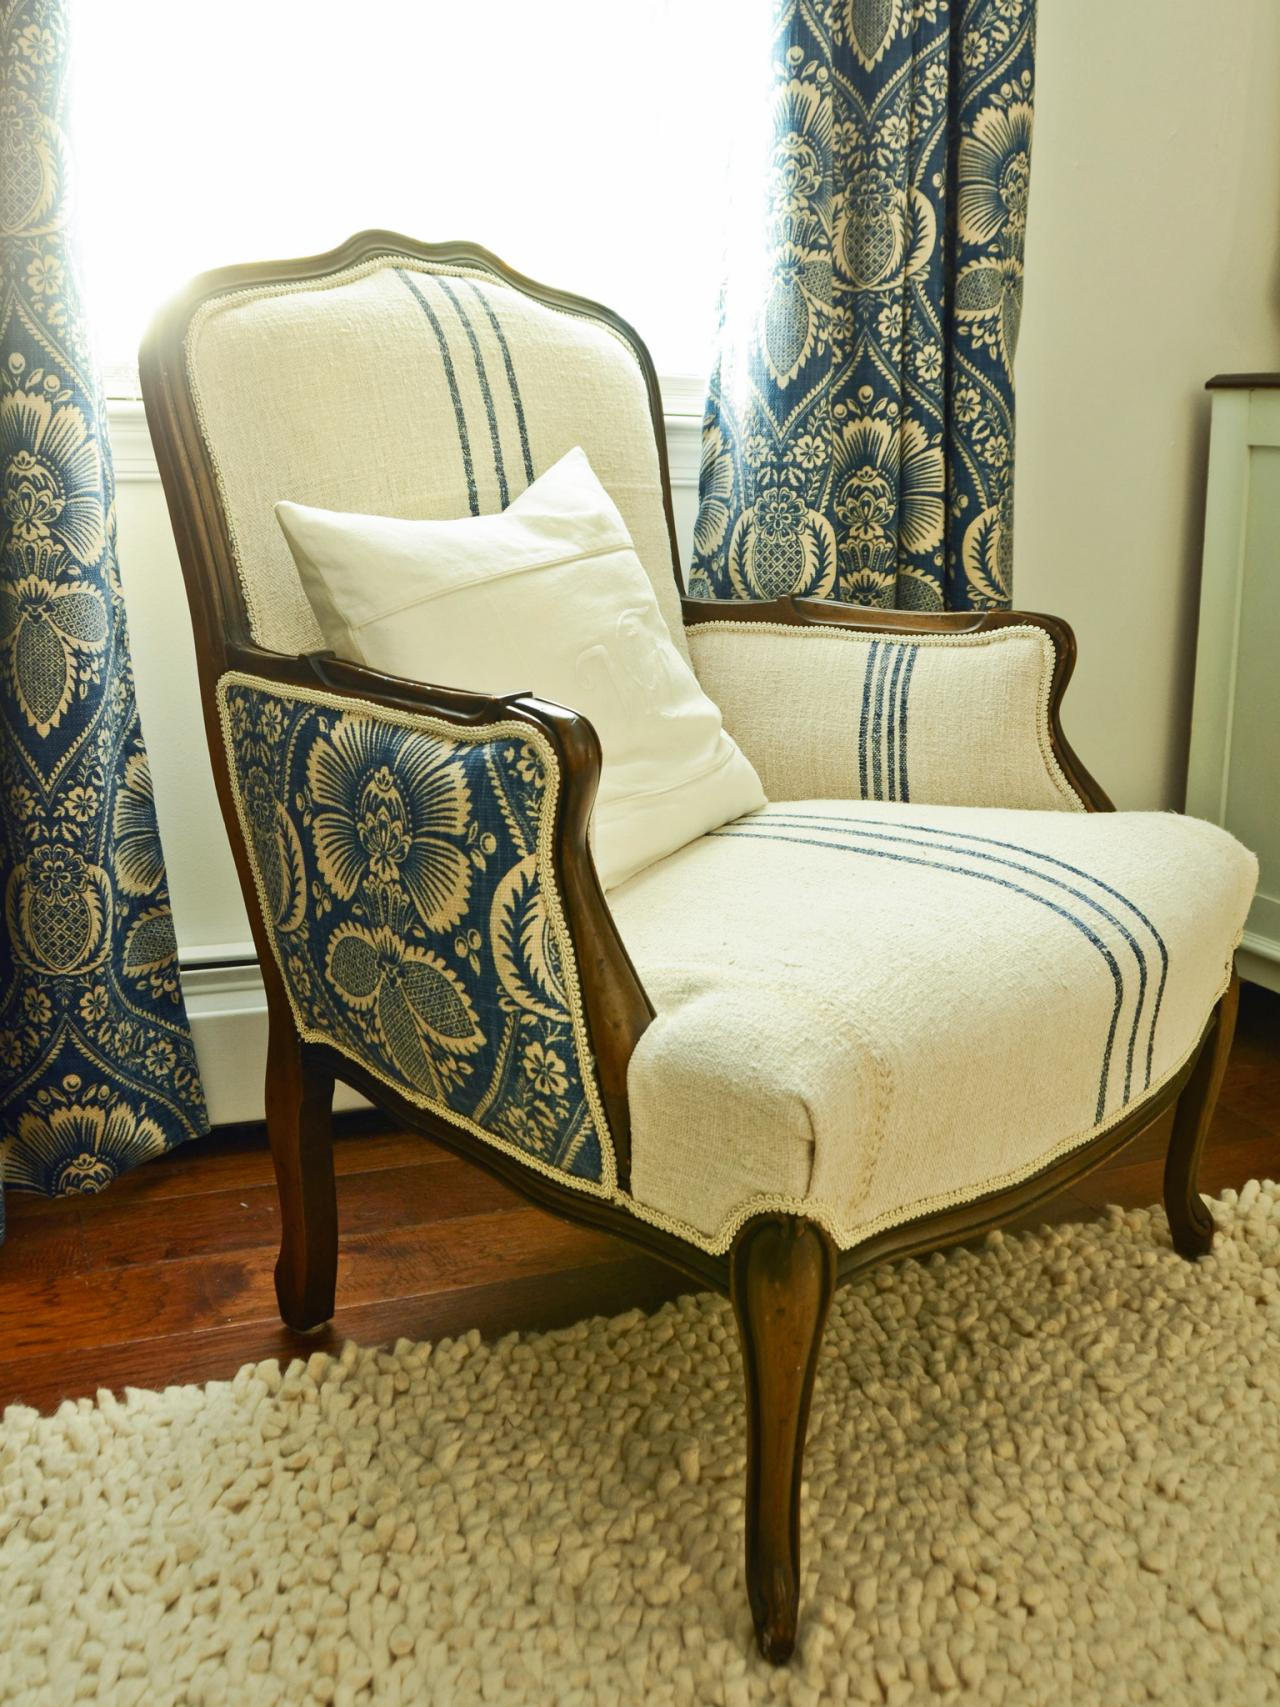 upholstered chair after tip chairs that have panels of fabric ...